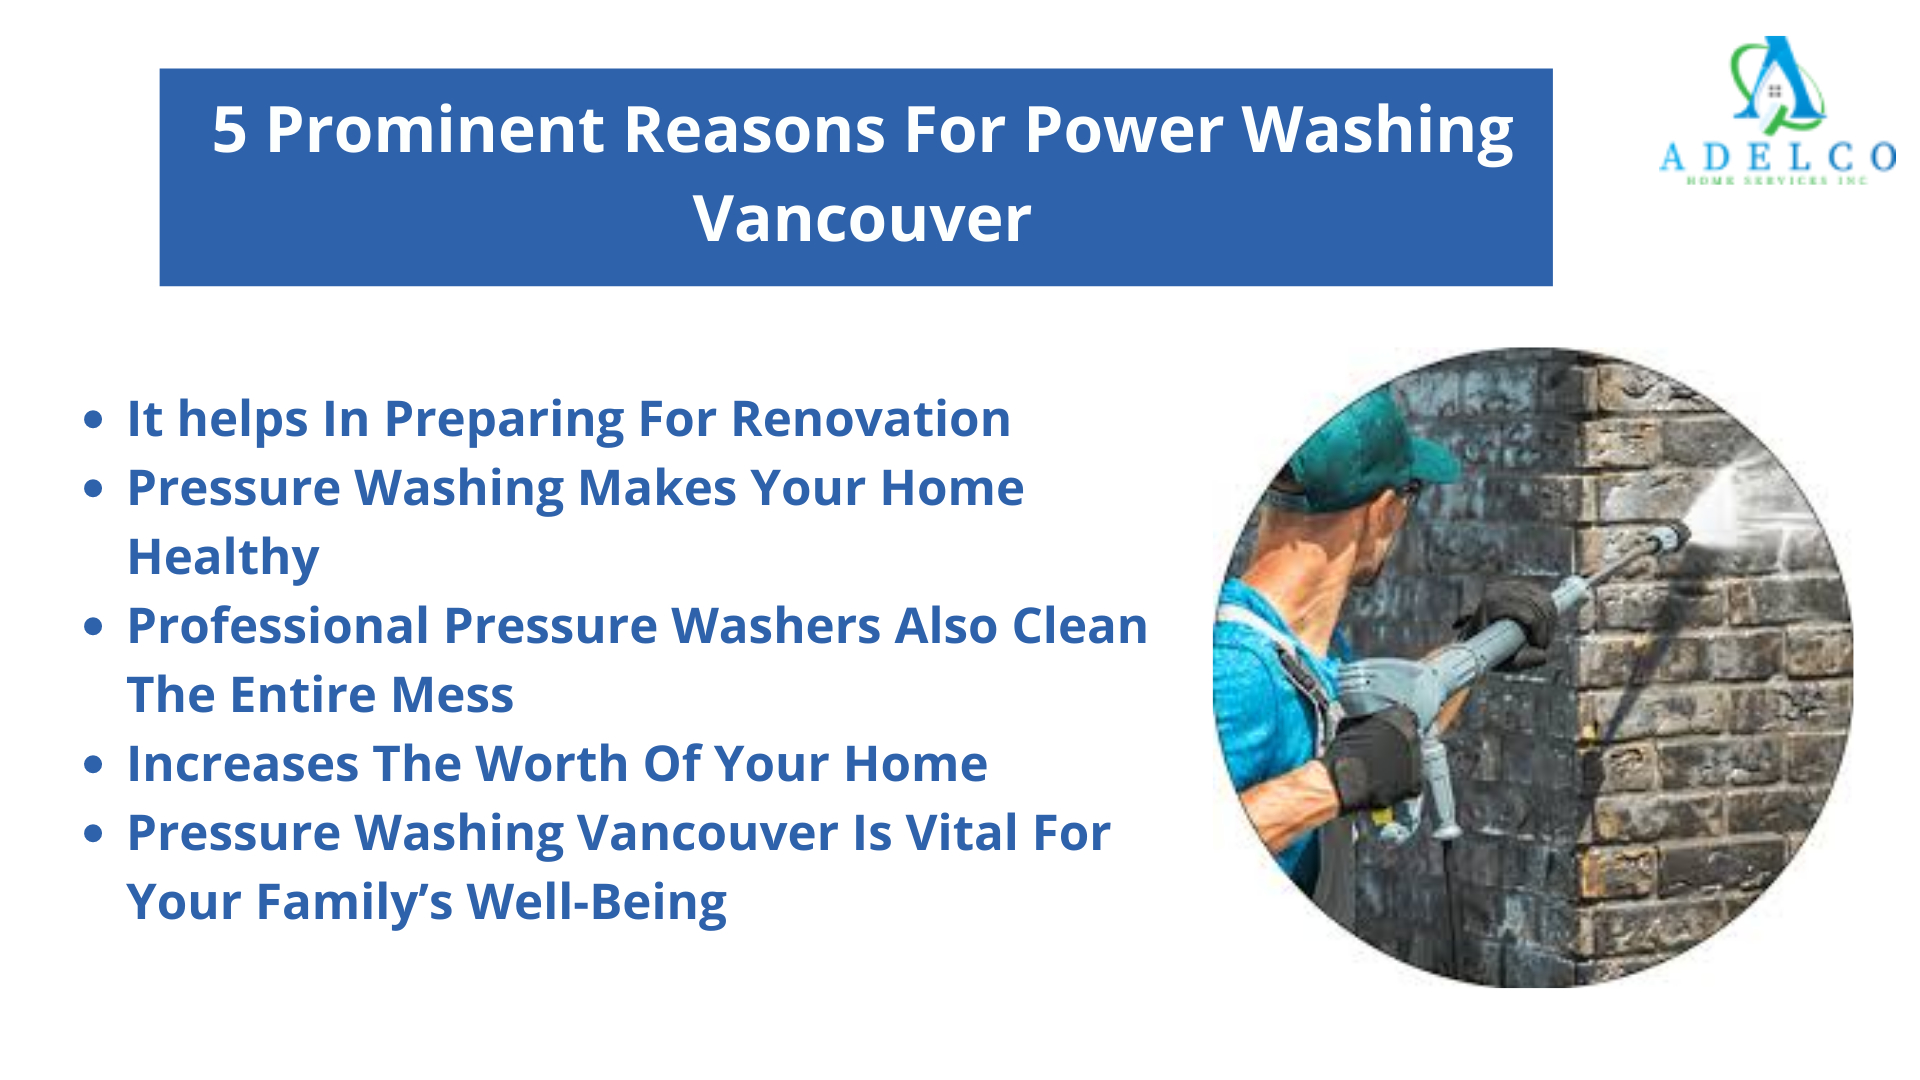 5 Reasons for Professional Power Washing Vancouver